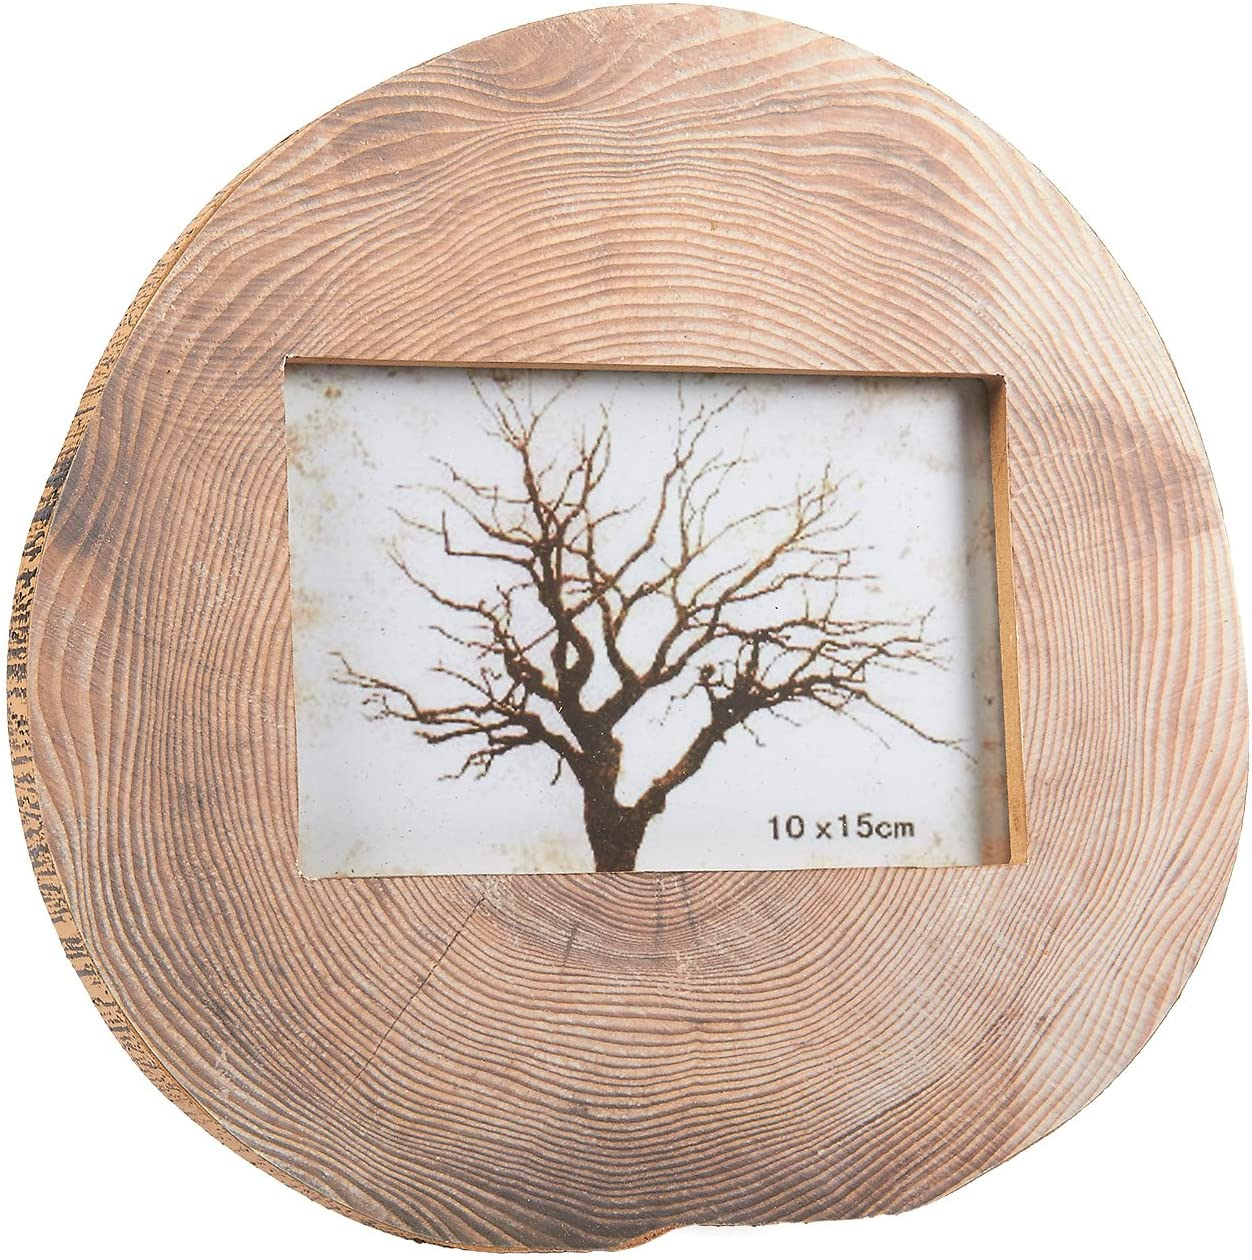 Round Wood Photo Frame - Horizontal Stand Picture Frame Tree Trunk Rings Designed Pattern for Desk Table Top, Home, Office and all Occasions Decoration, holds 4 x 6 Photo, 9.25 x 8.75 x 0.5 inches